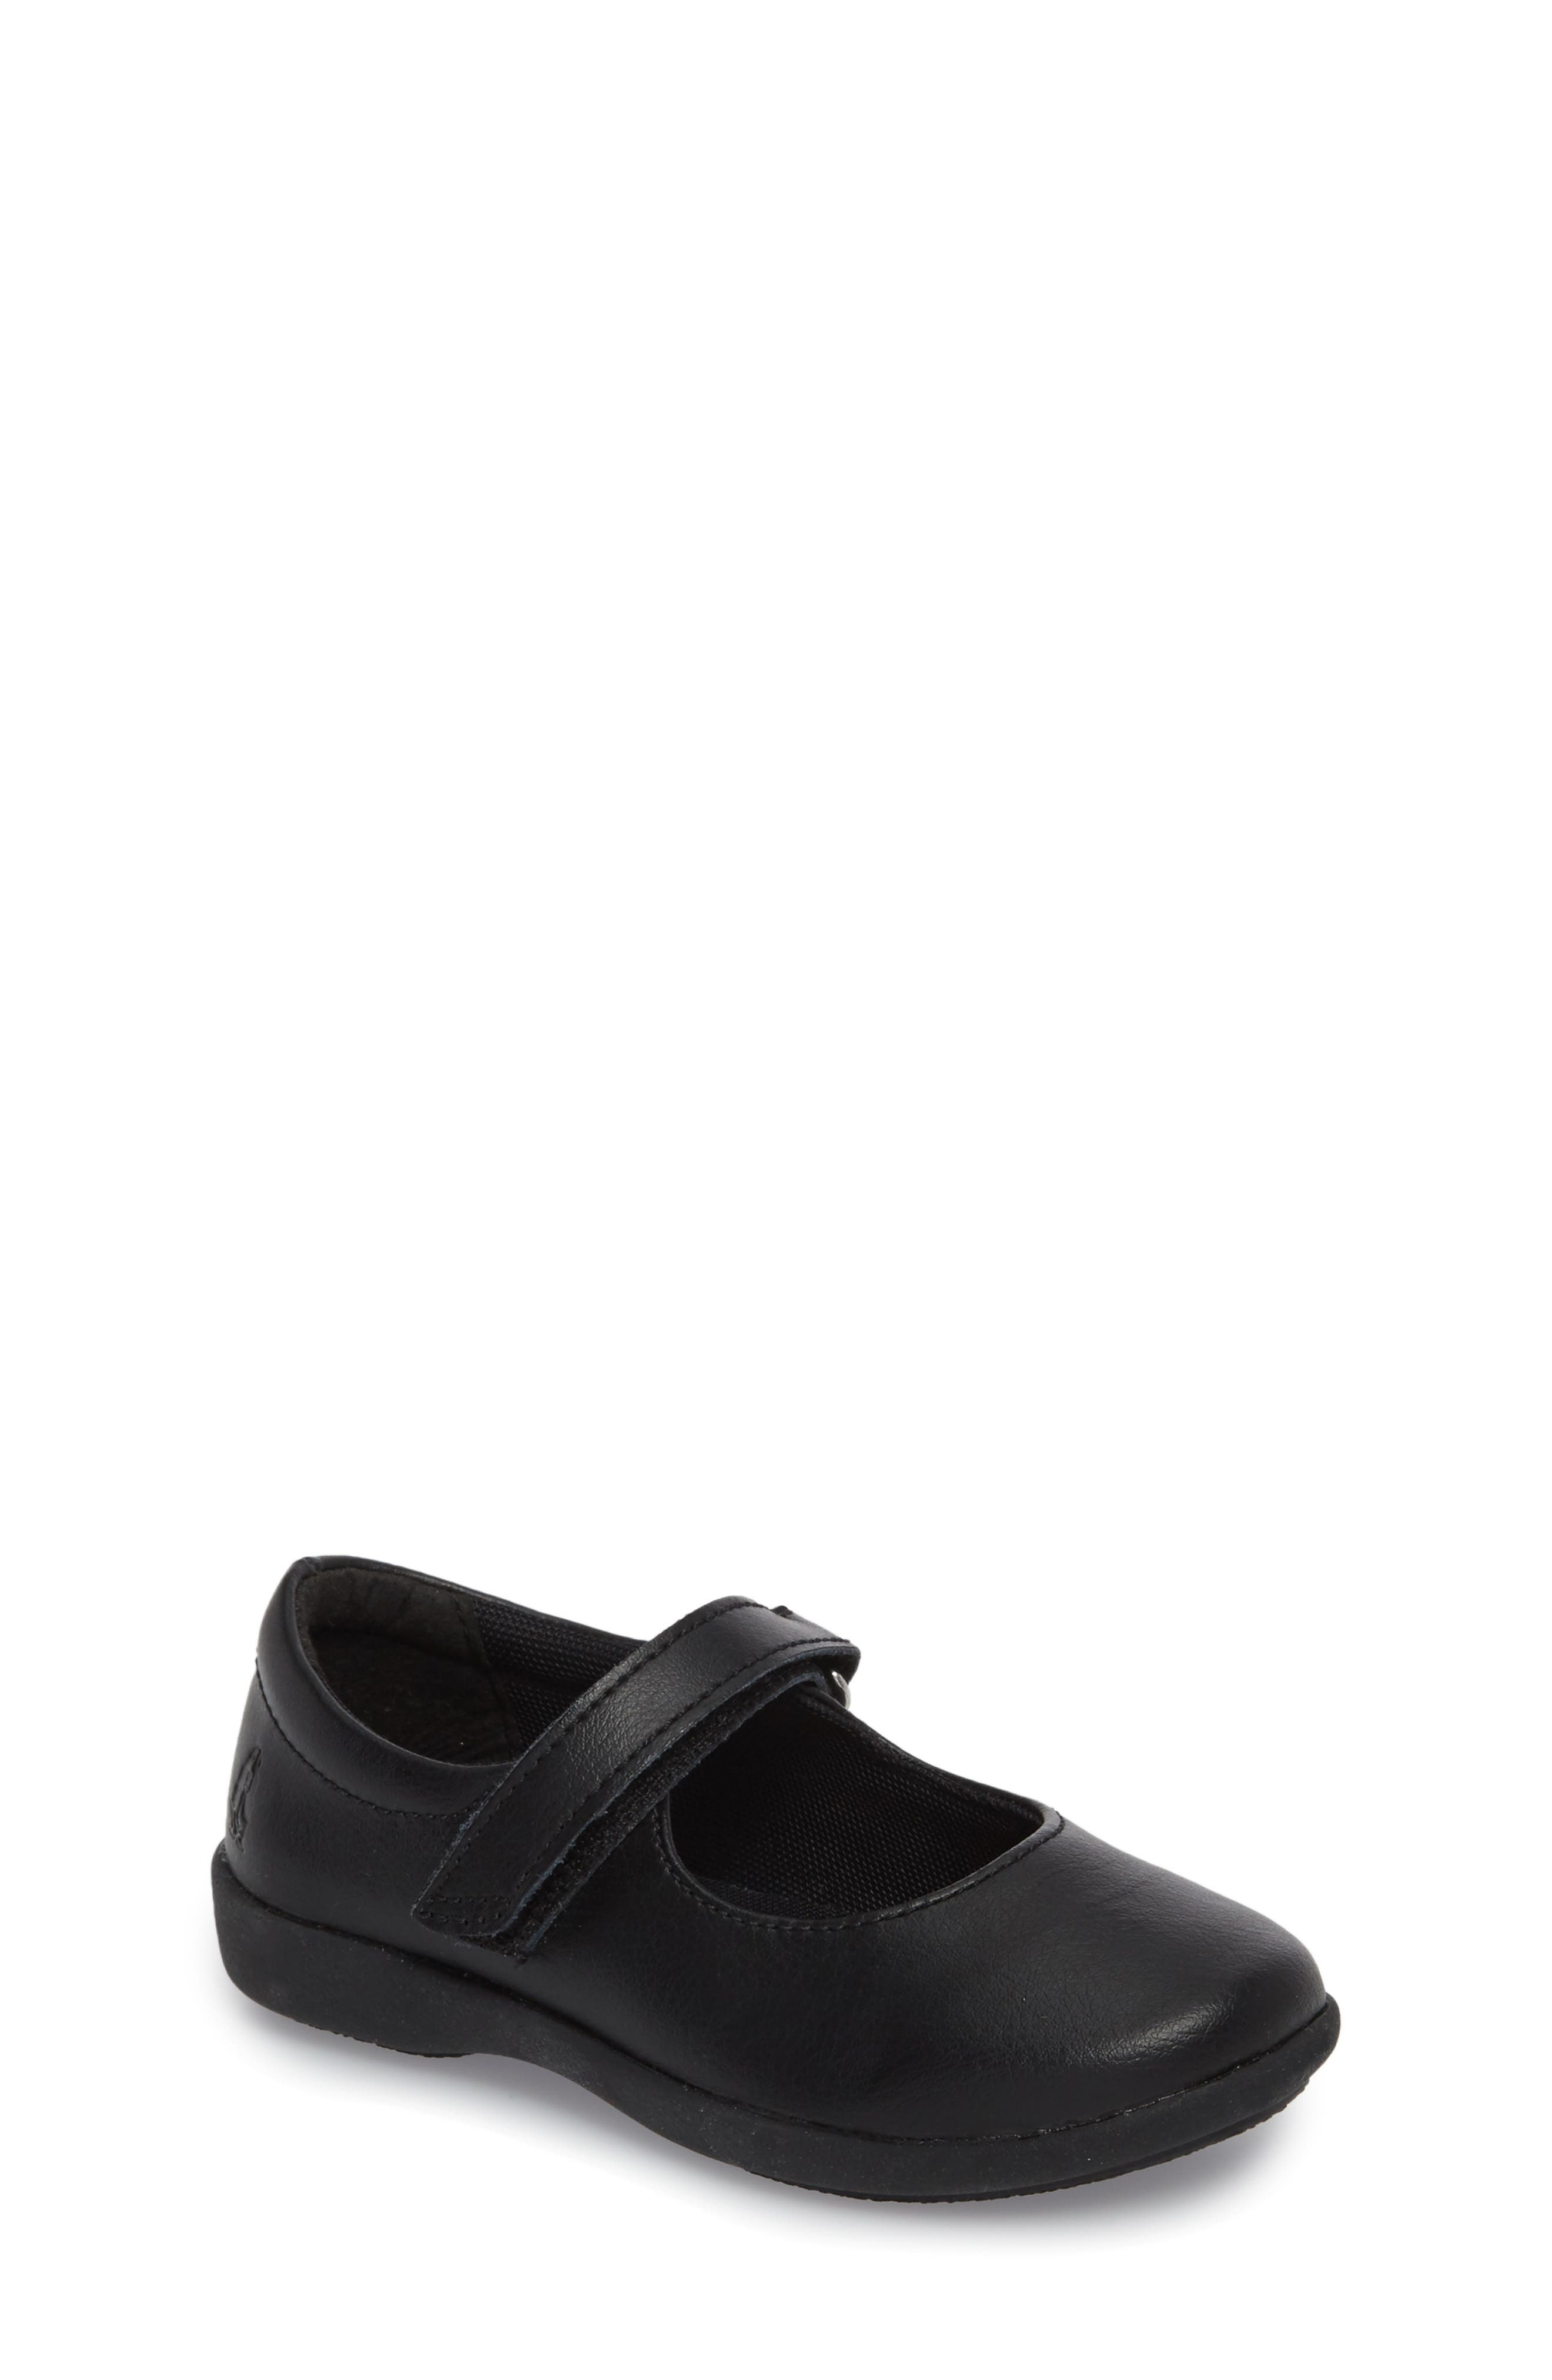 Lexi Mary Jane Flat,                         Main,                         color, BLACK LEATHER